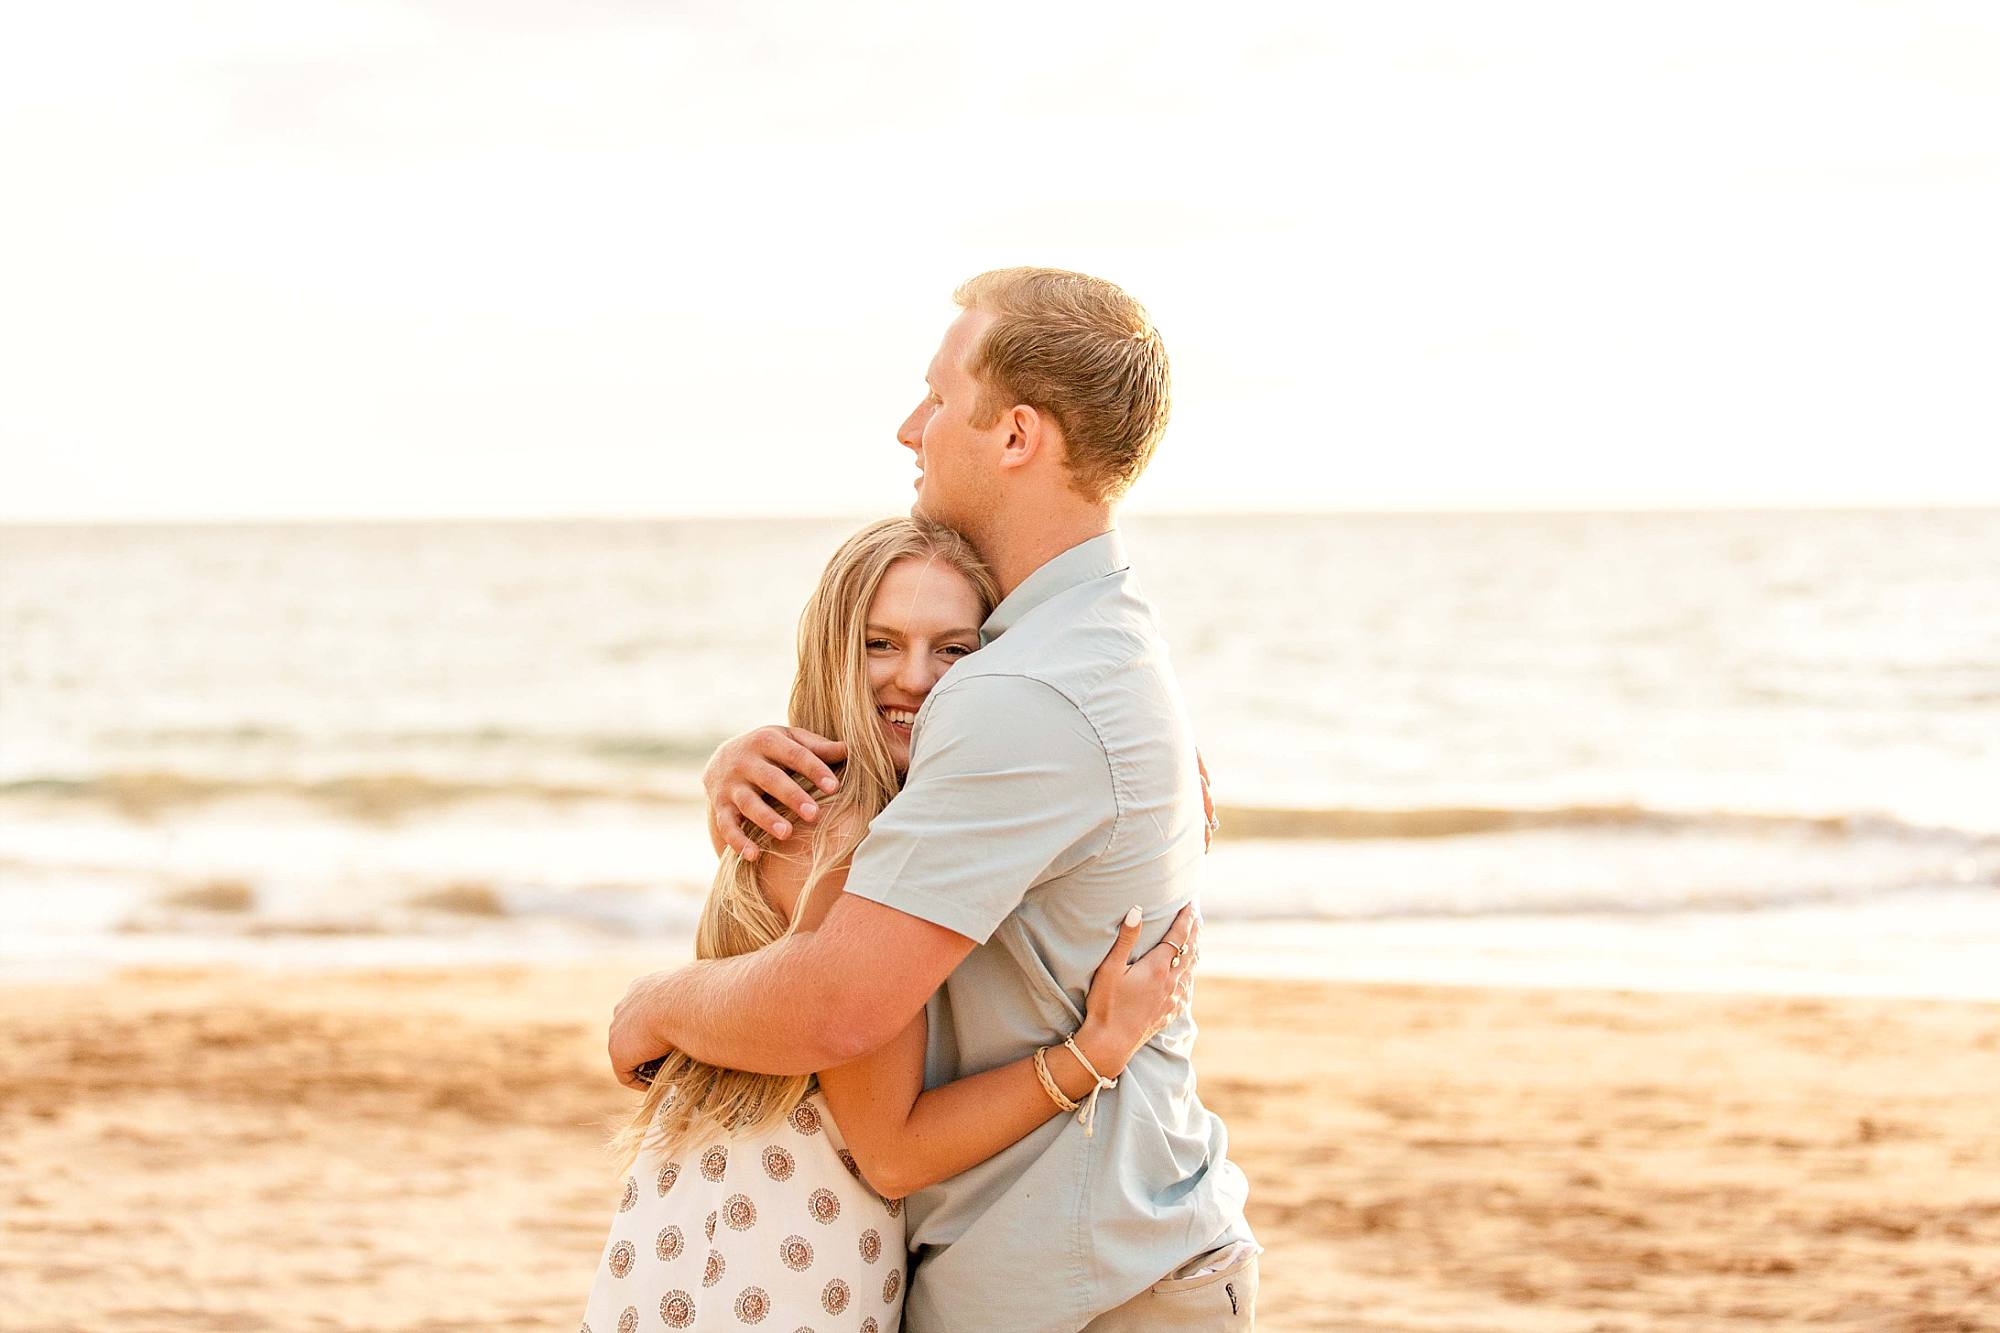 woman absolutely glowing after a proposal getting hugged by her new fiance